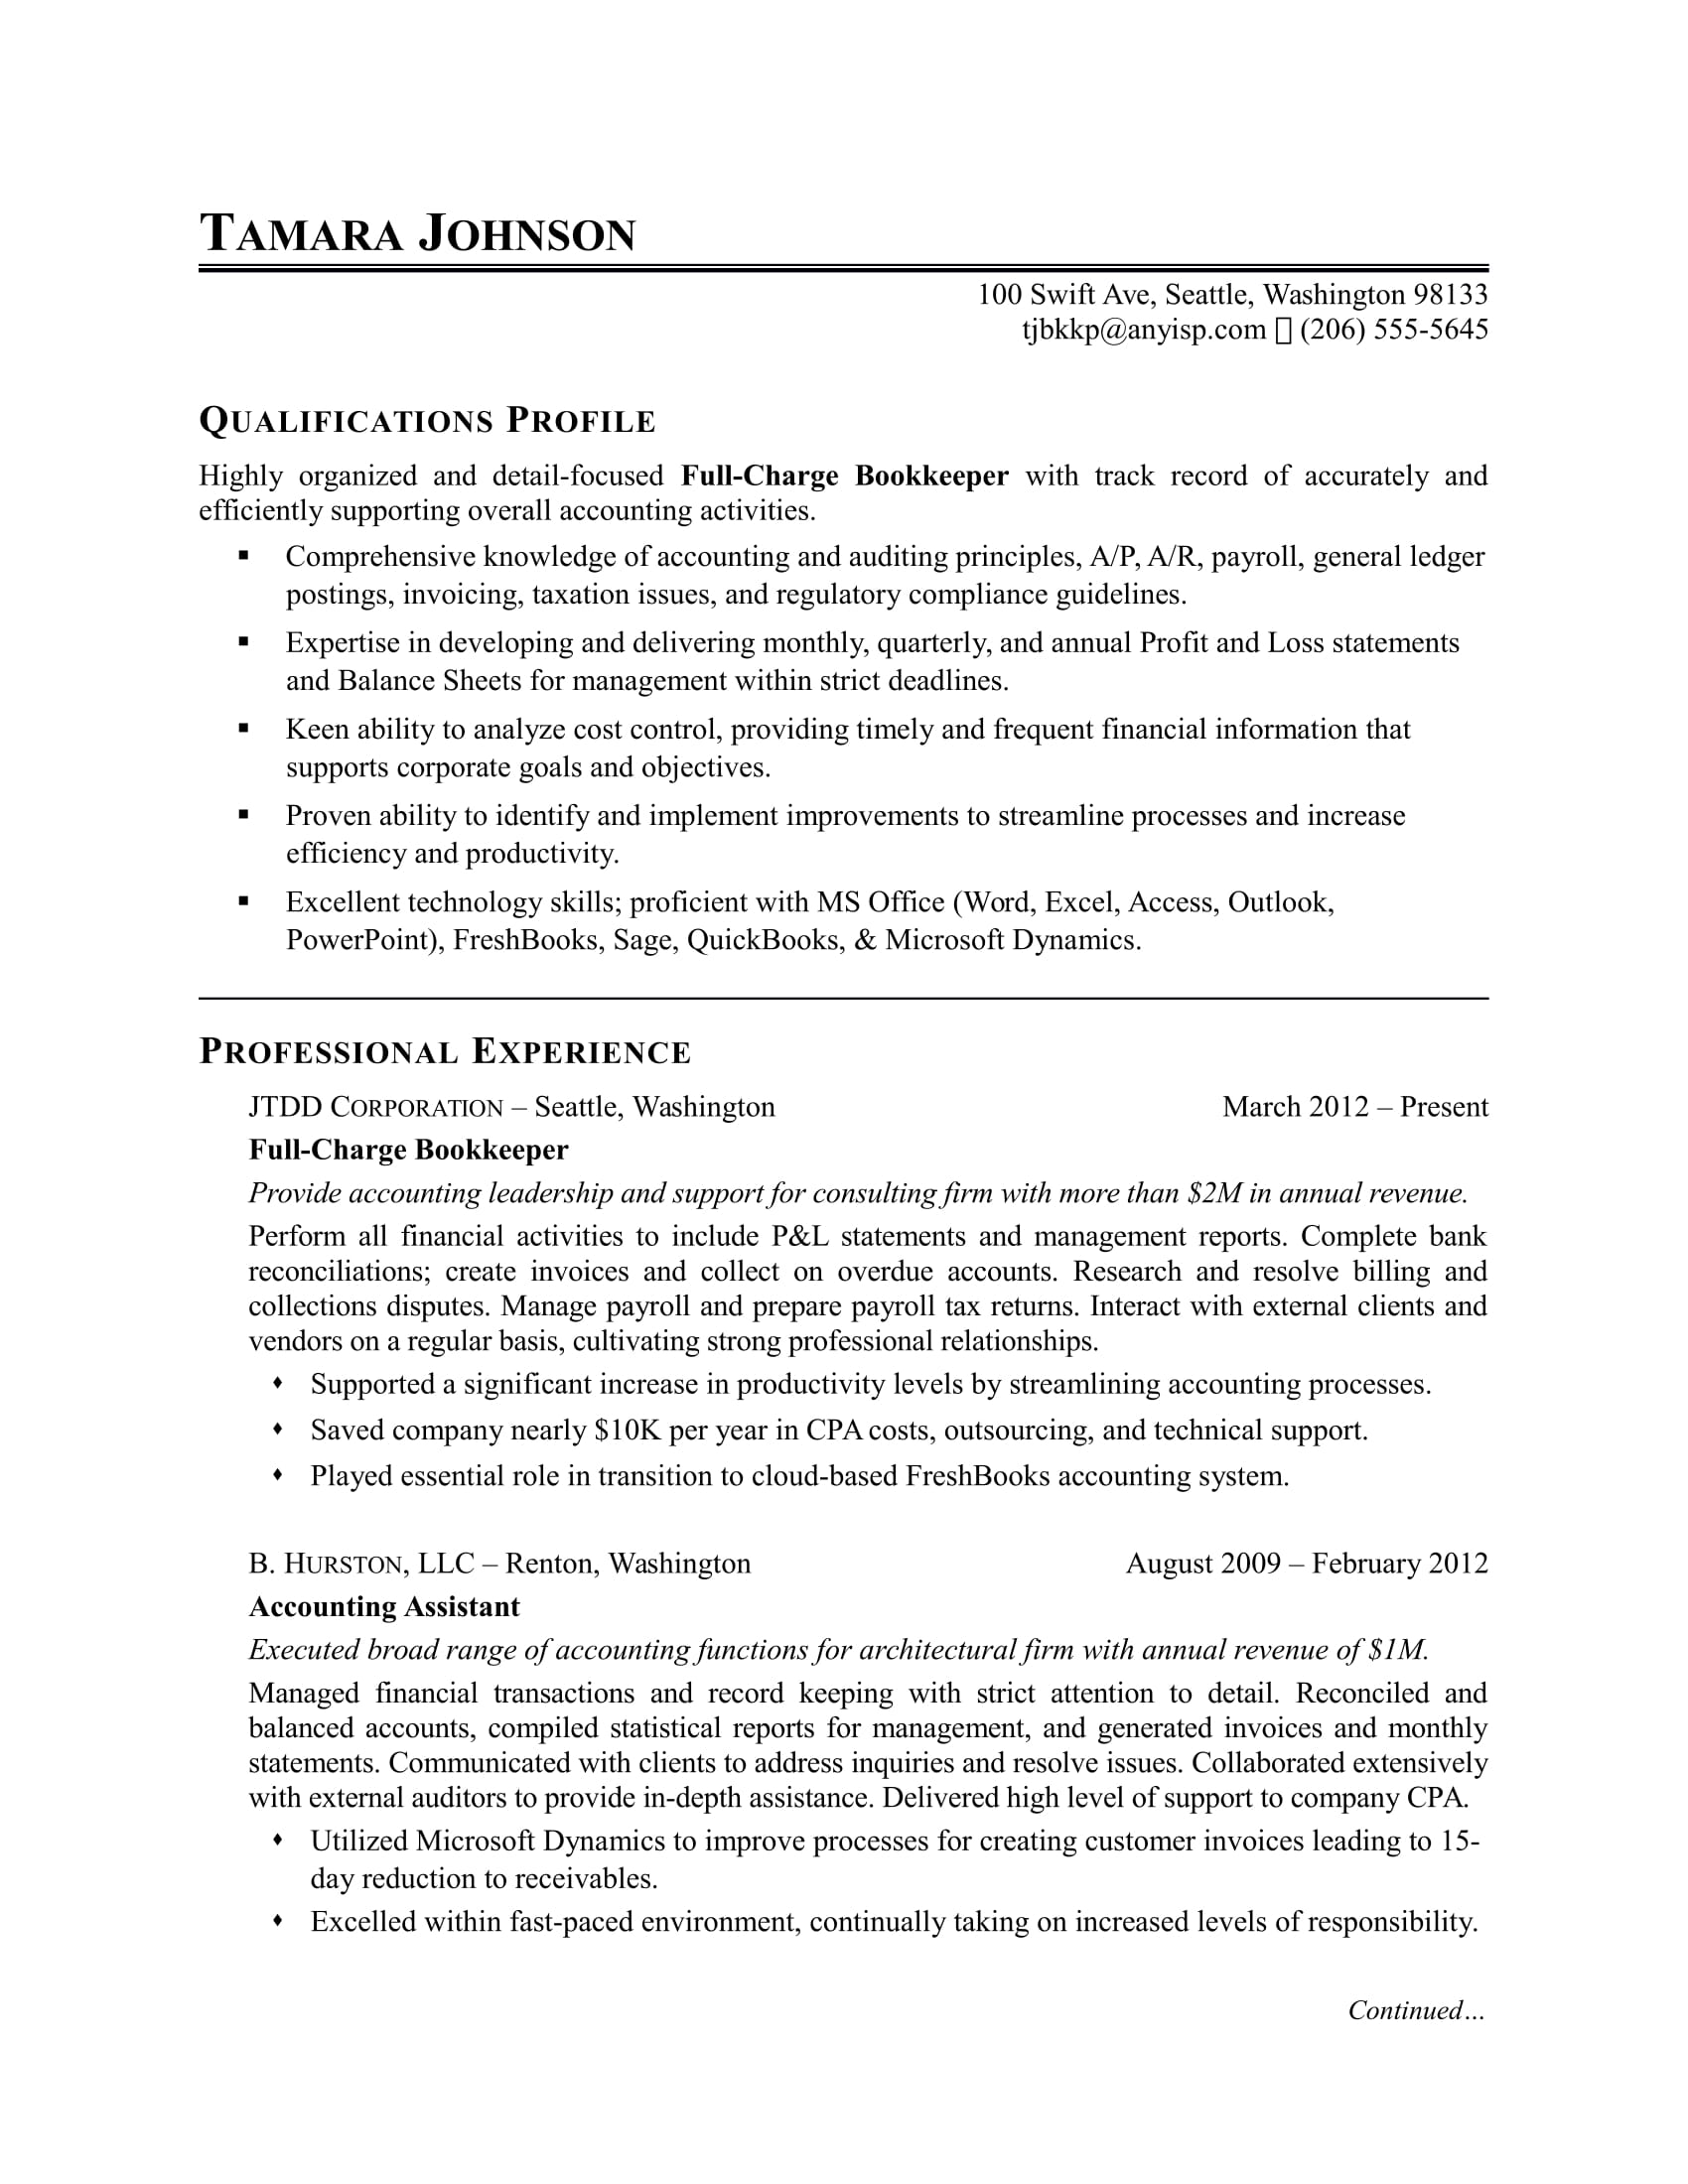 Superb Sample Resume For A Bookkeeper And Full Charge Bookkeeper Resume